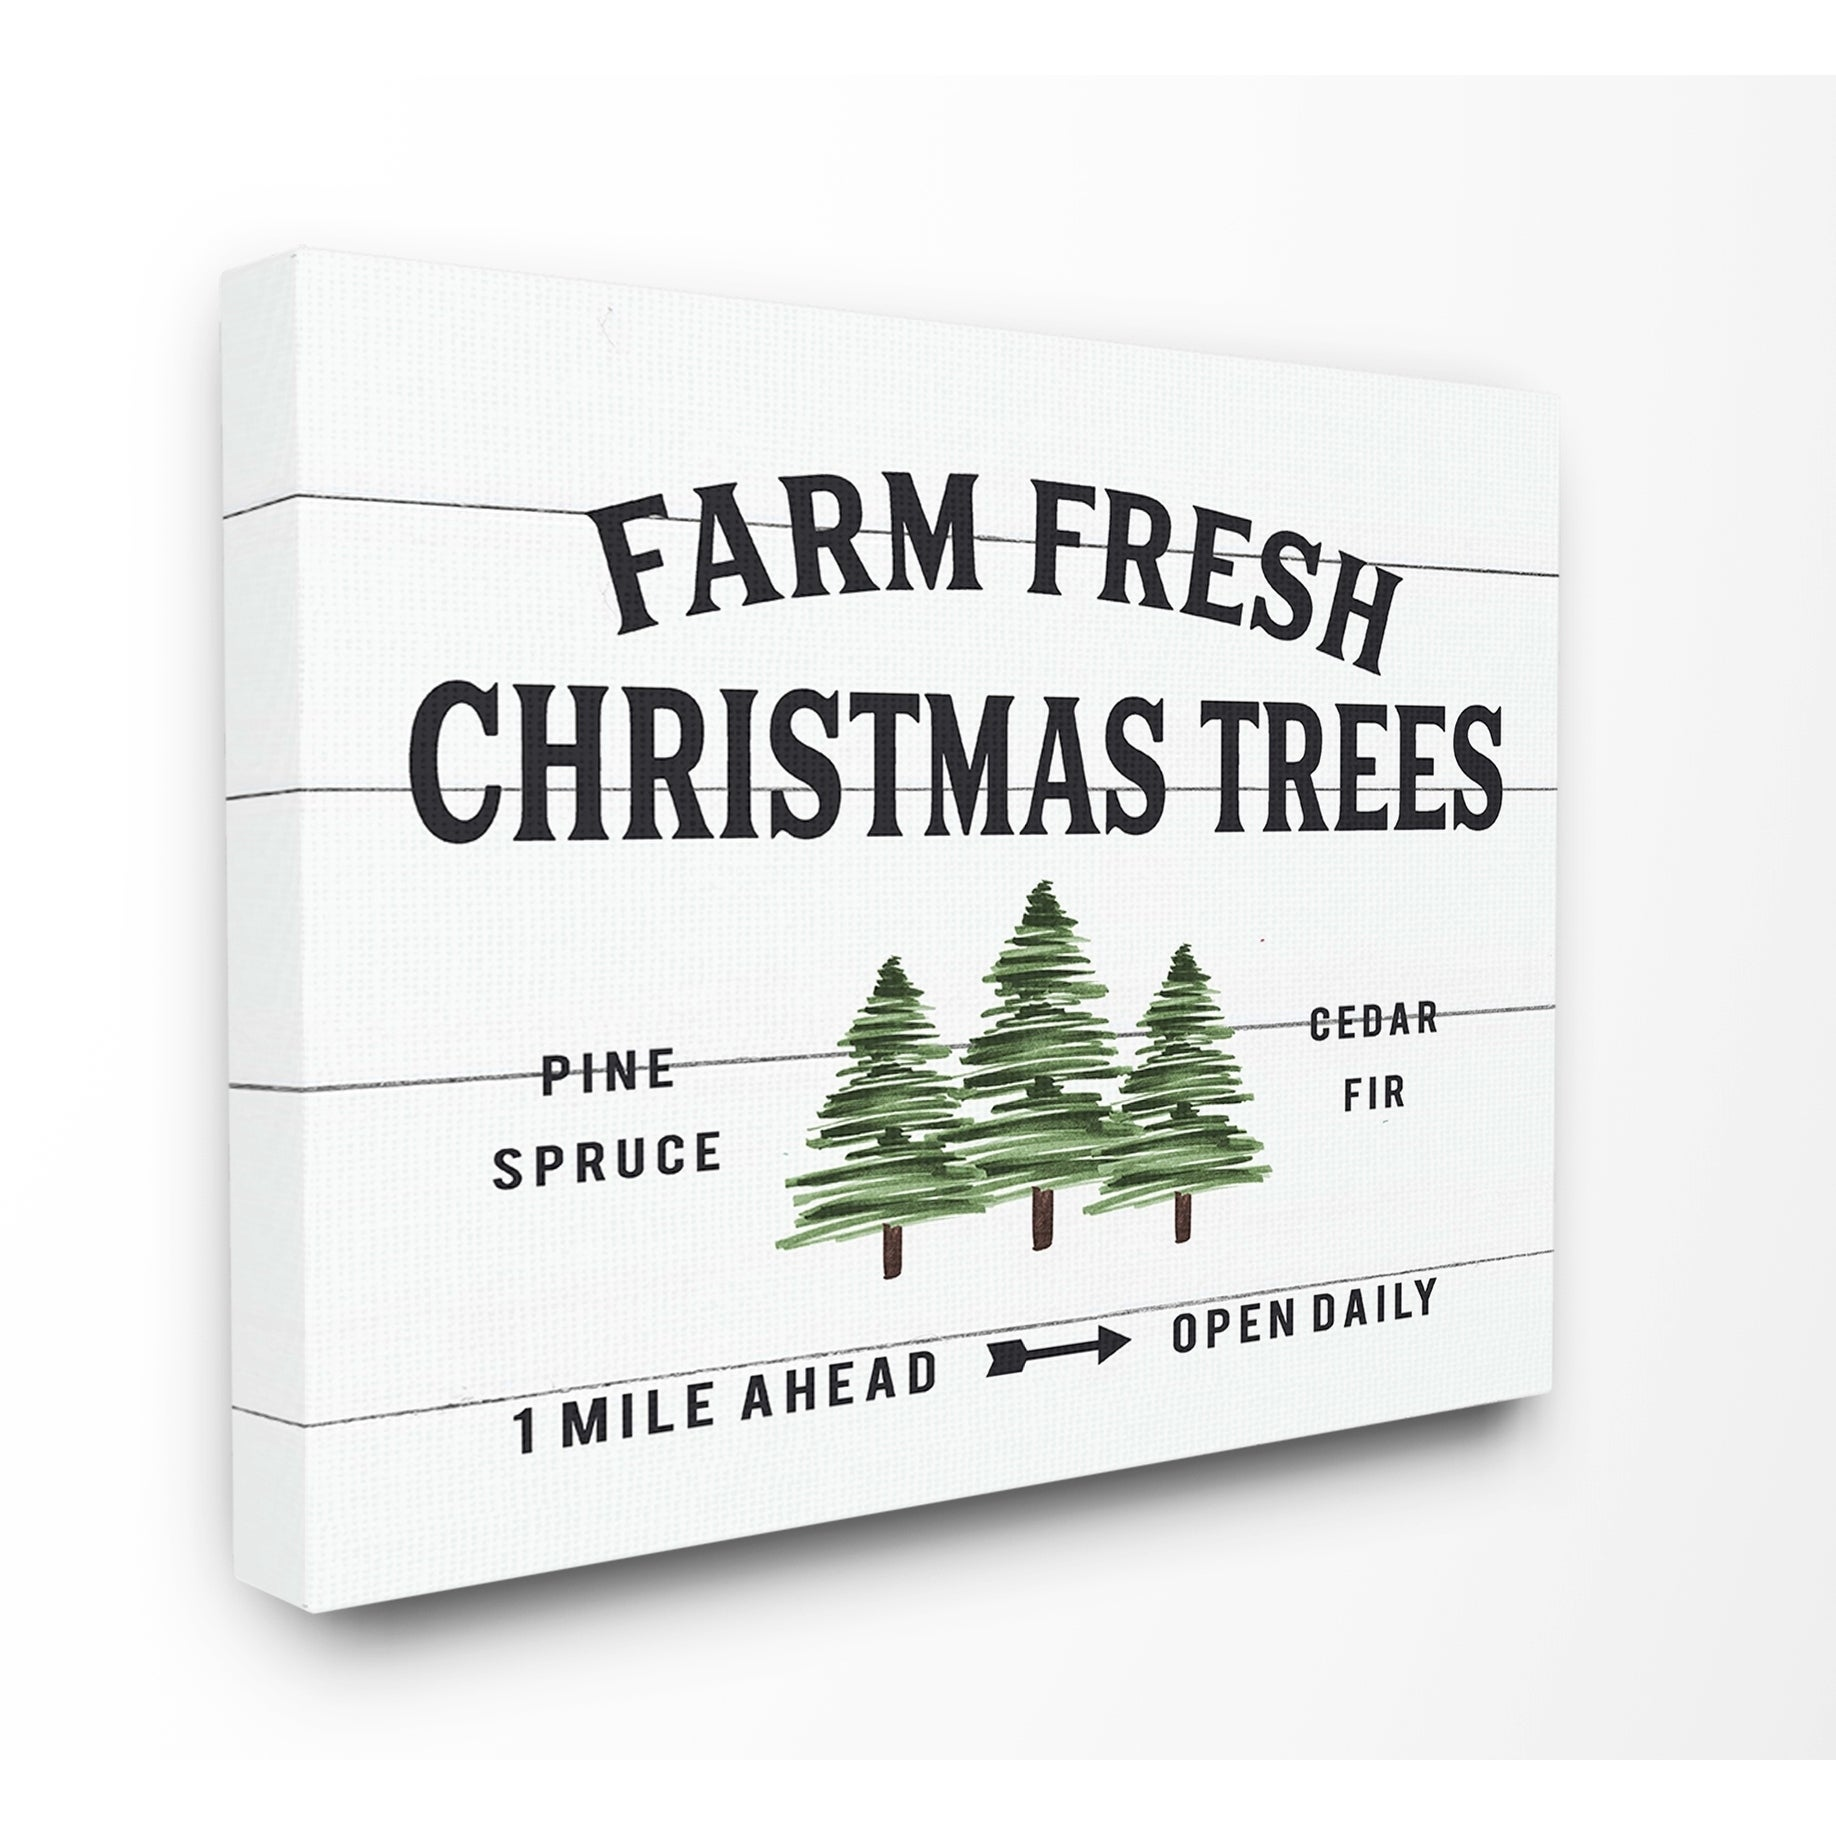 The Stupell Home Decor Collection Holiday Farm Fresh Christmas Trees Spruce Canvas Wall Art 16 X 20 Proudly Made In Usa